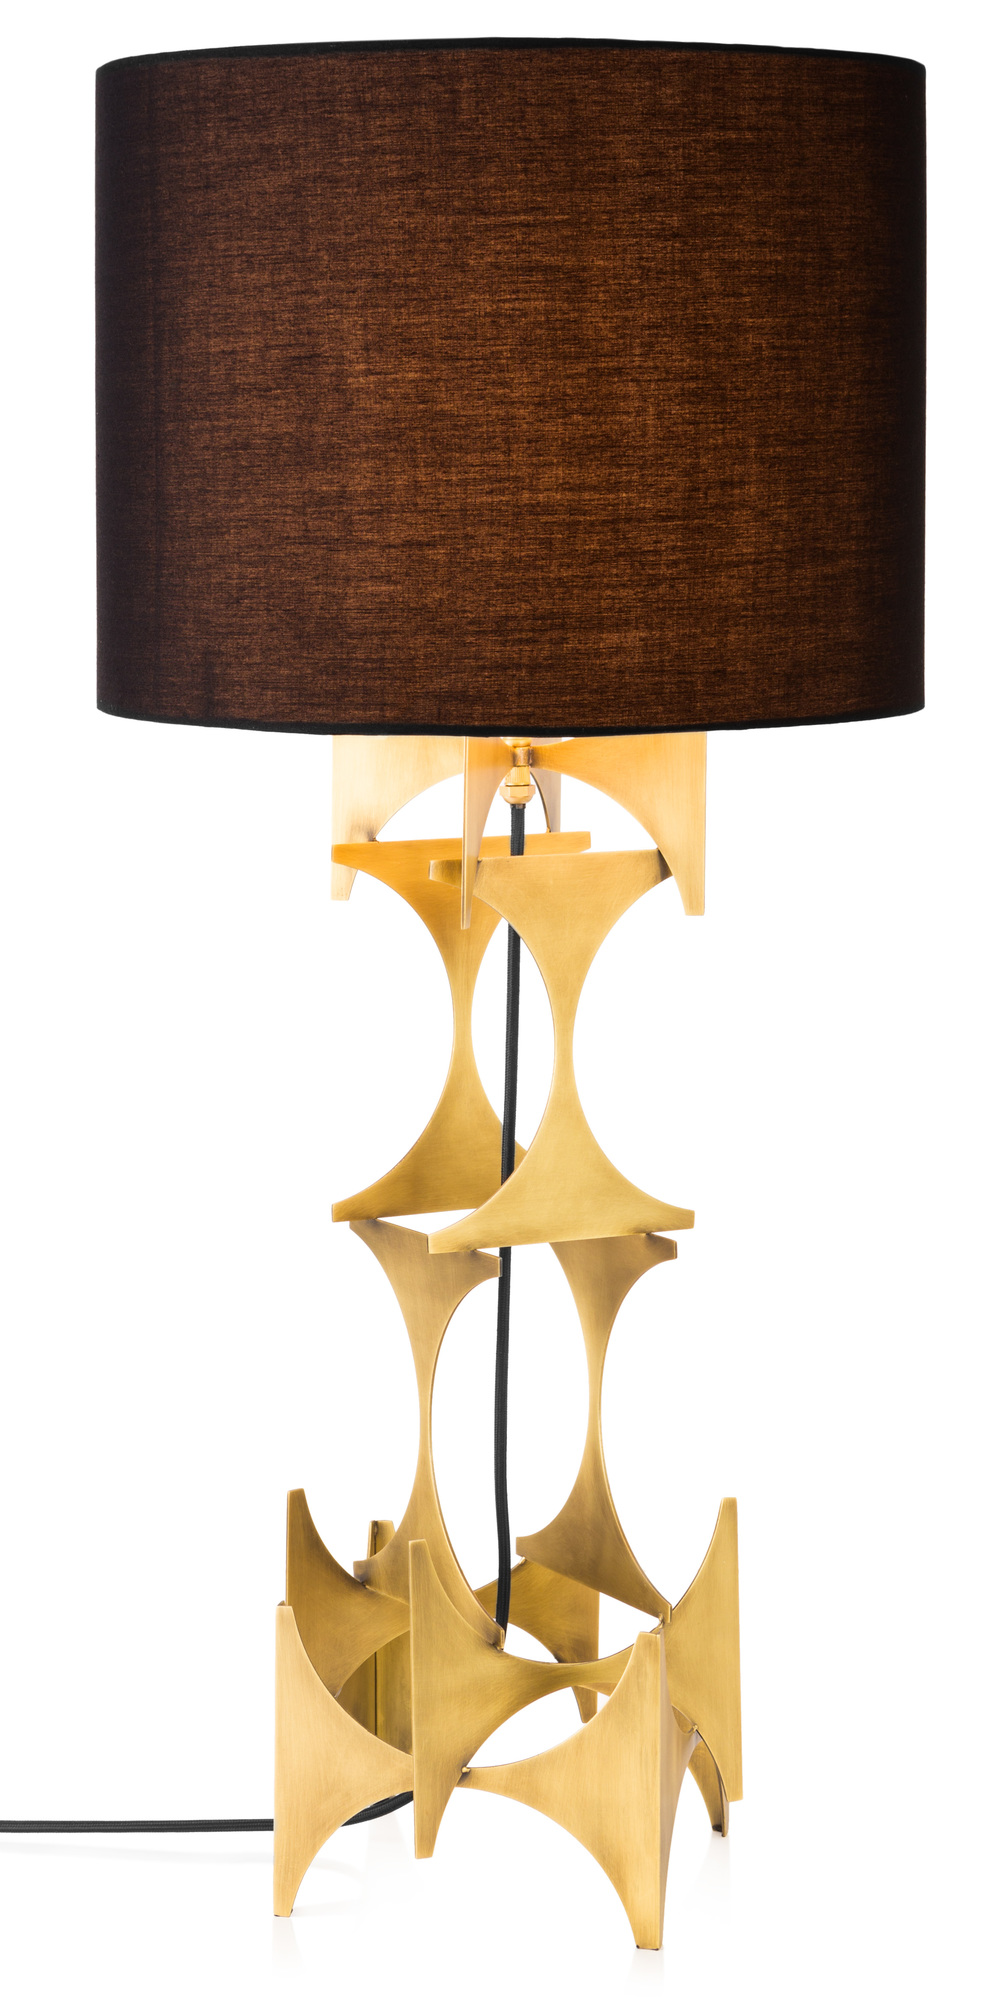 Judith Table Lamp by M3LD